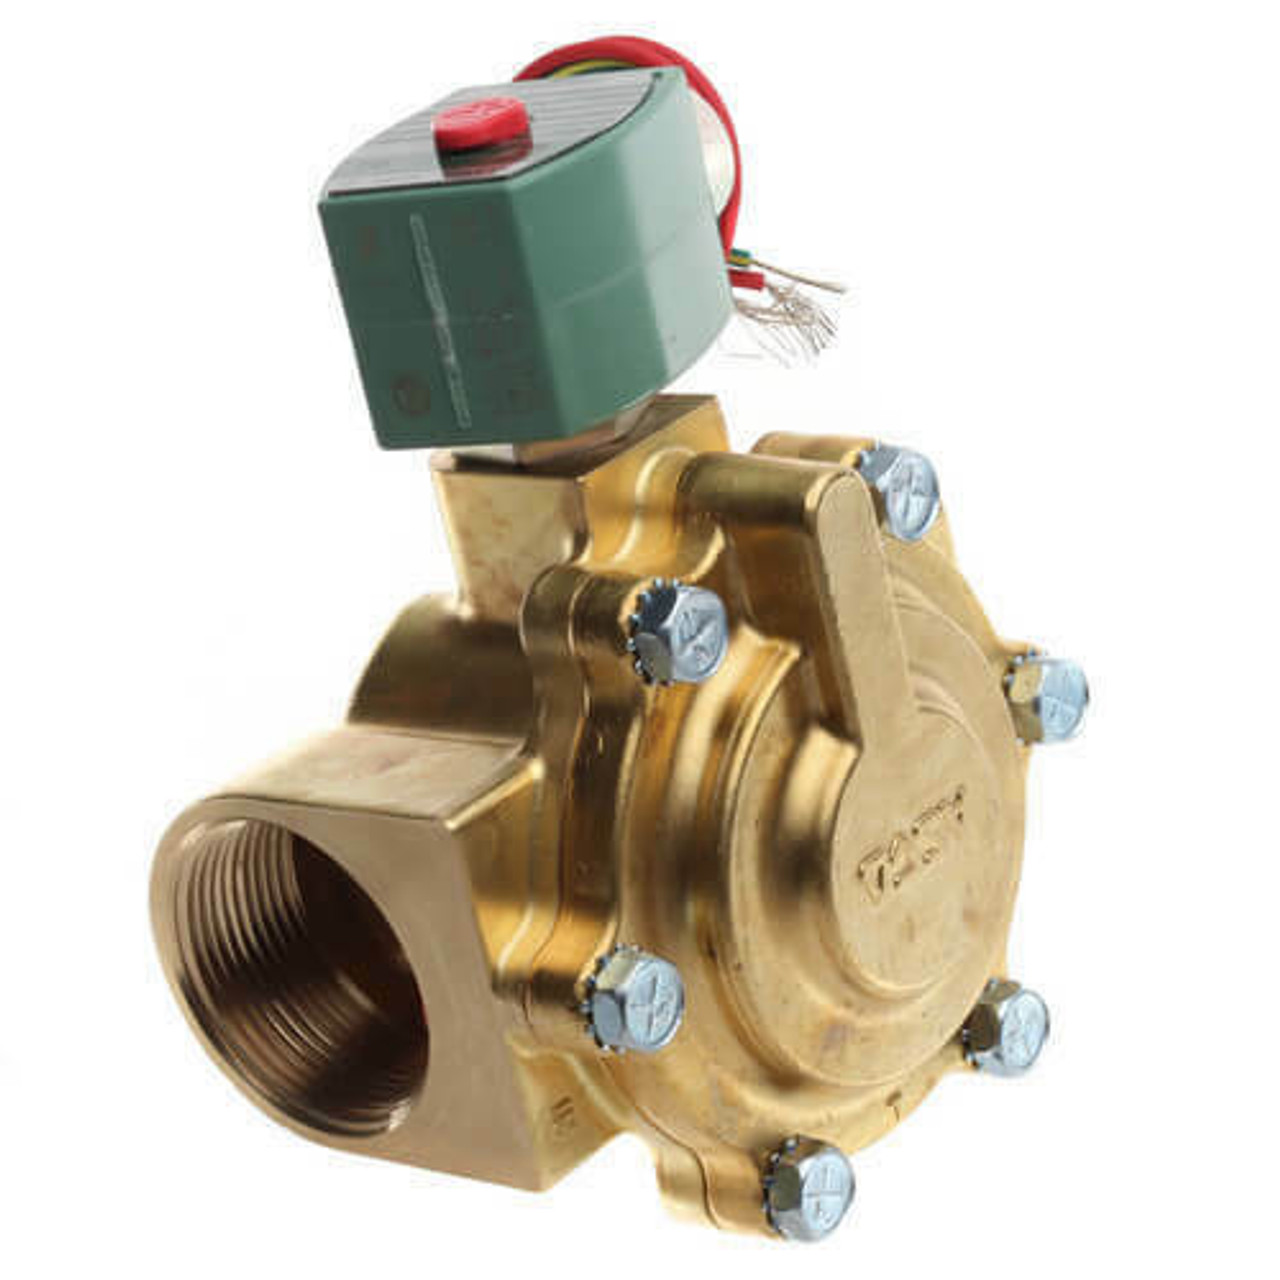 Ascco 120V AC Solenoid Valve, Normally Closed, 1/2 in Pipe